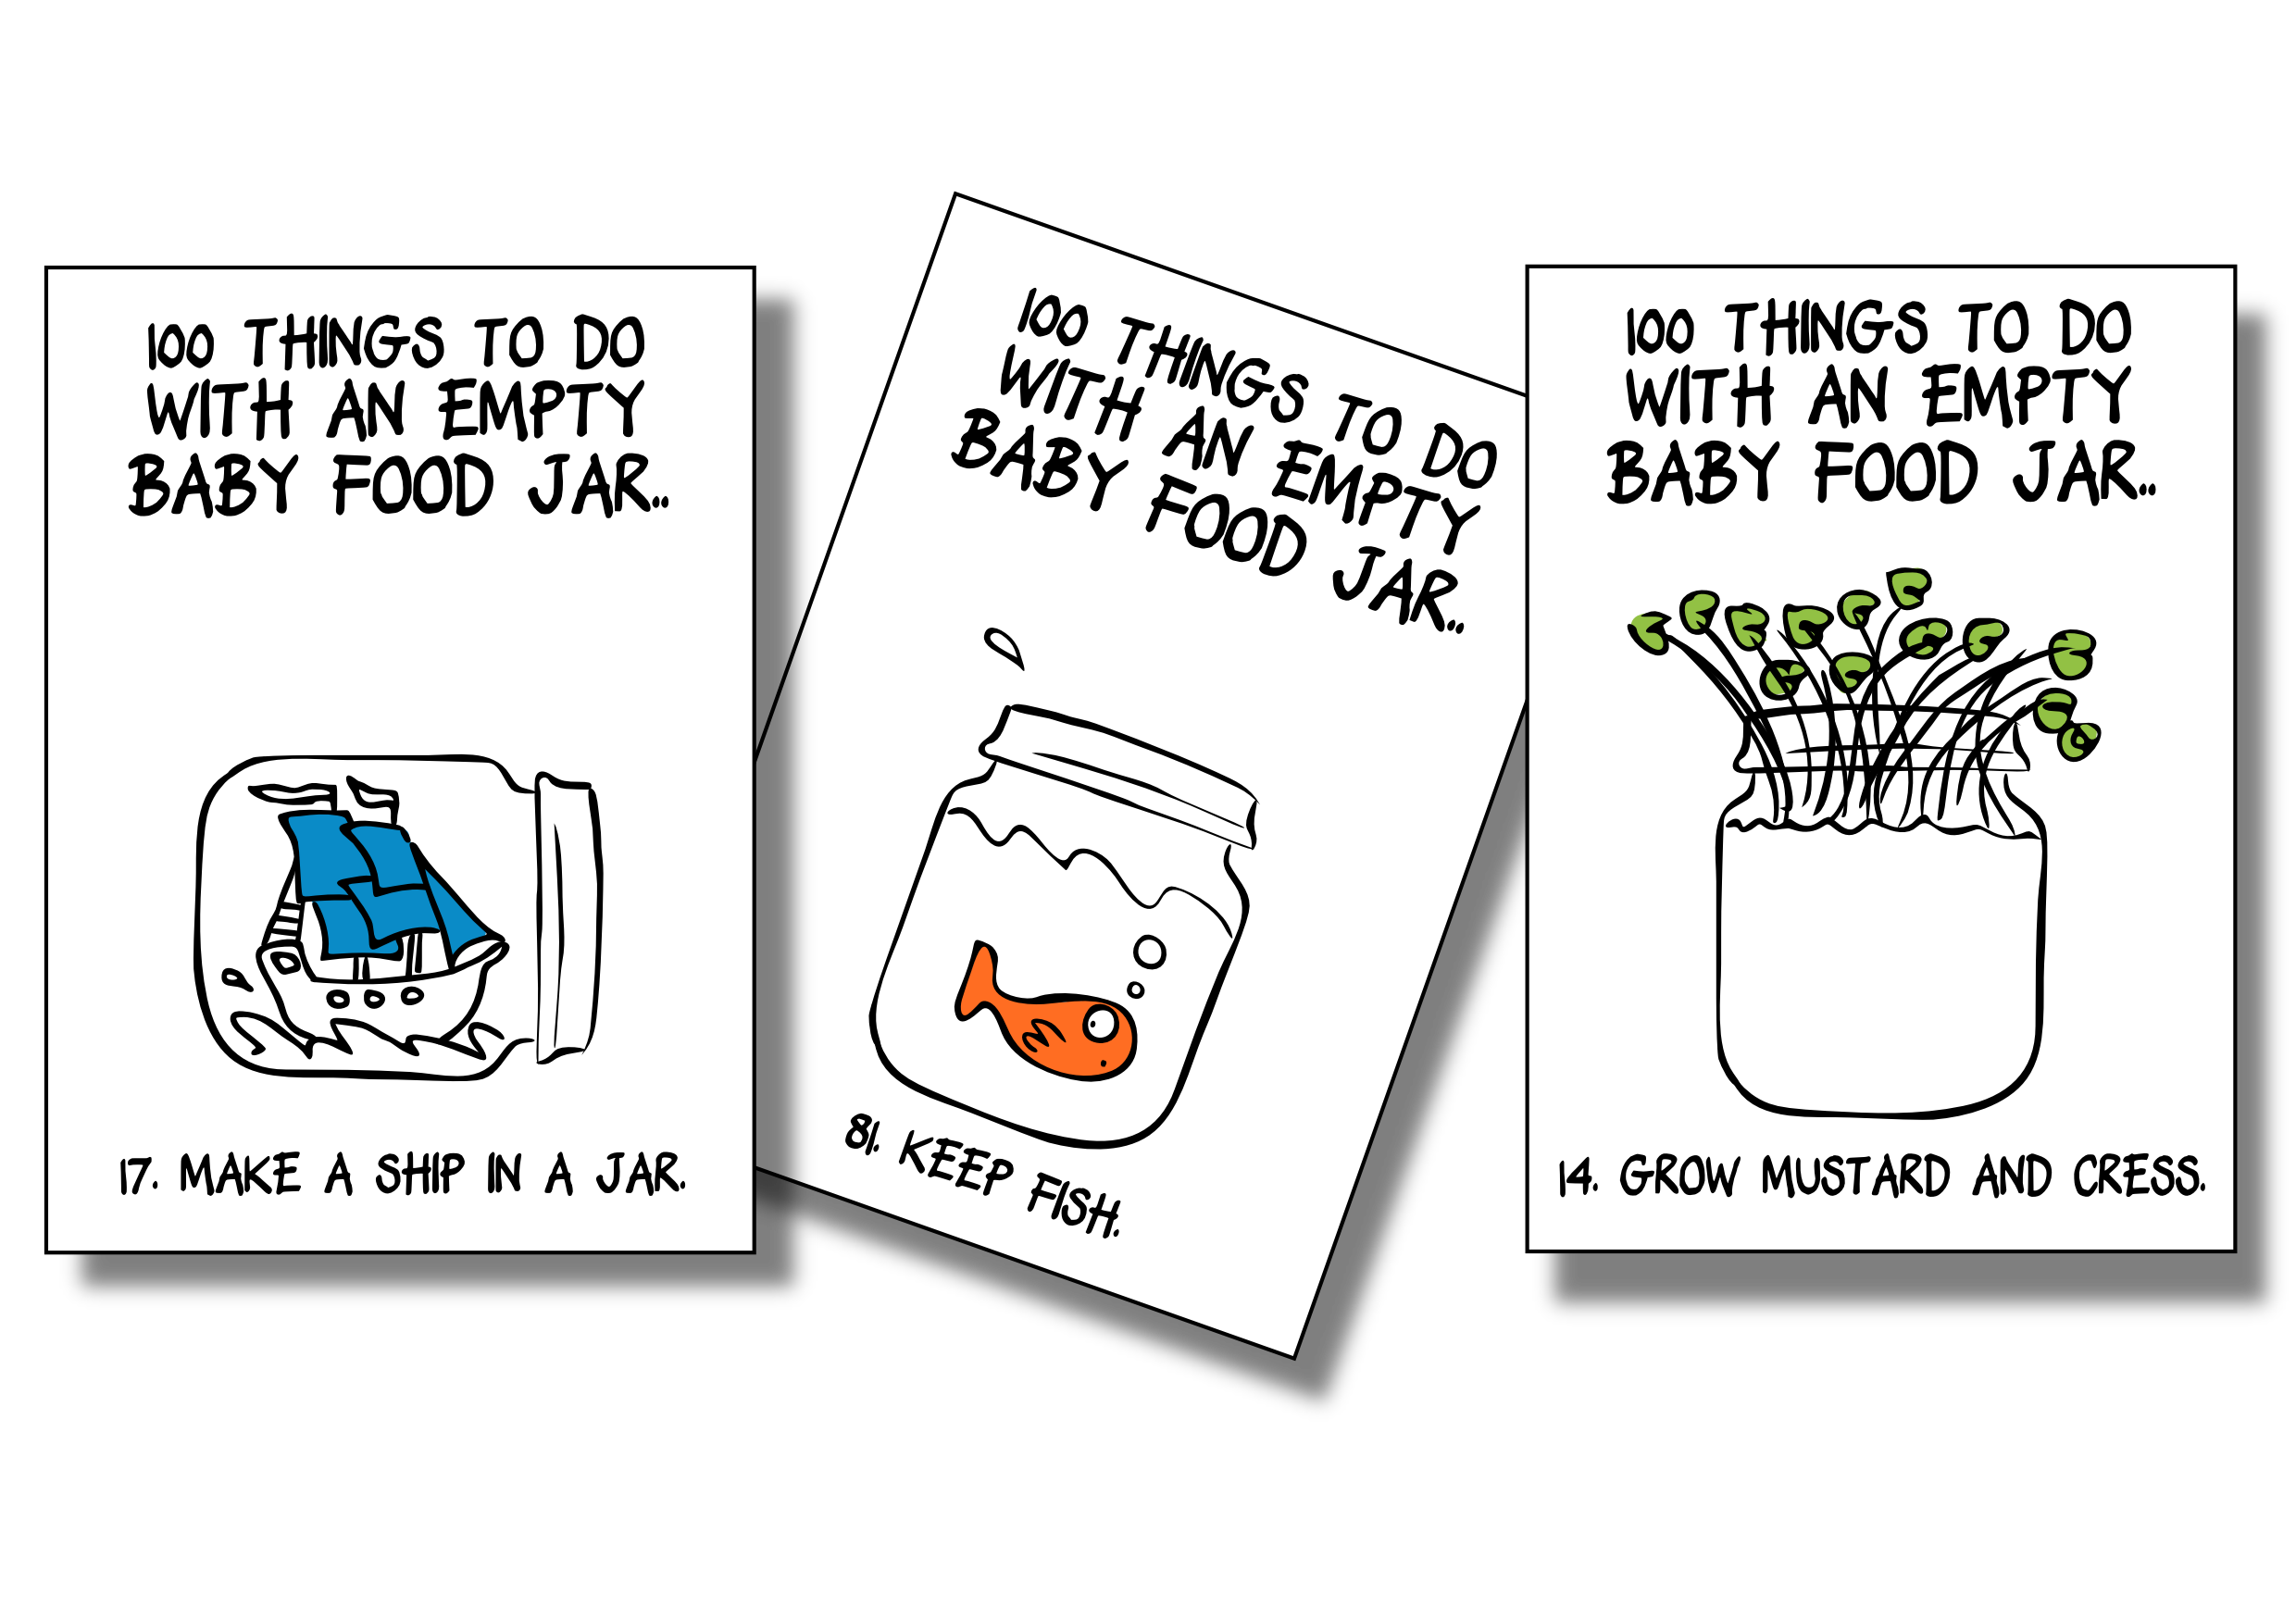 100 things to do with an empty baby food jar robert duncan for Things that are empty